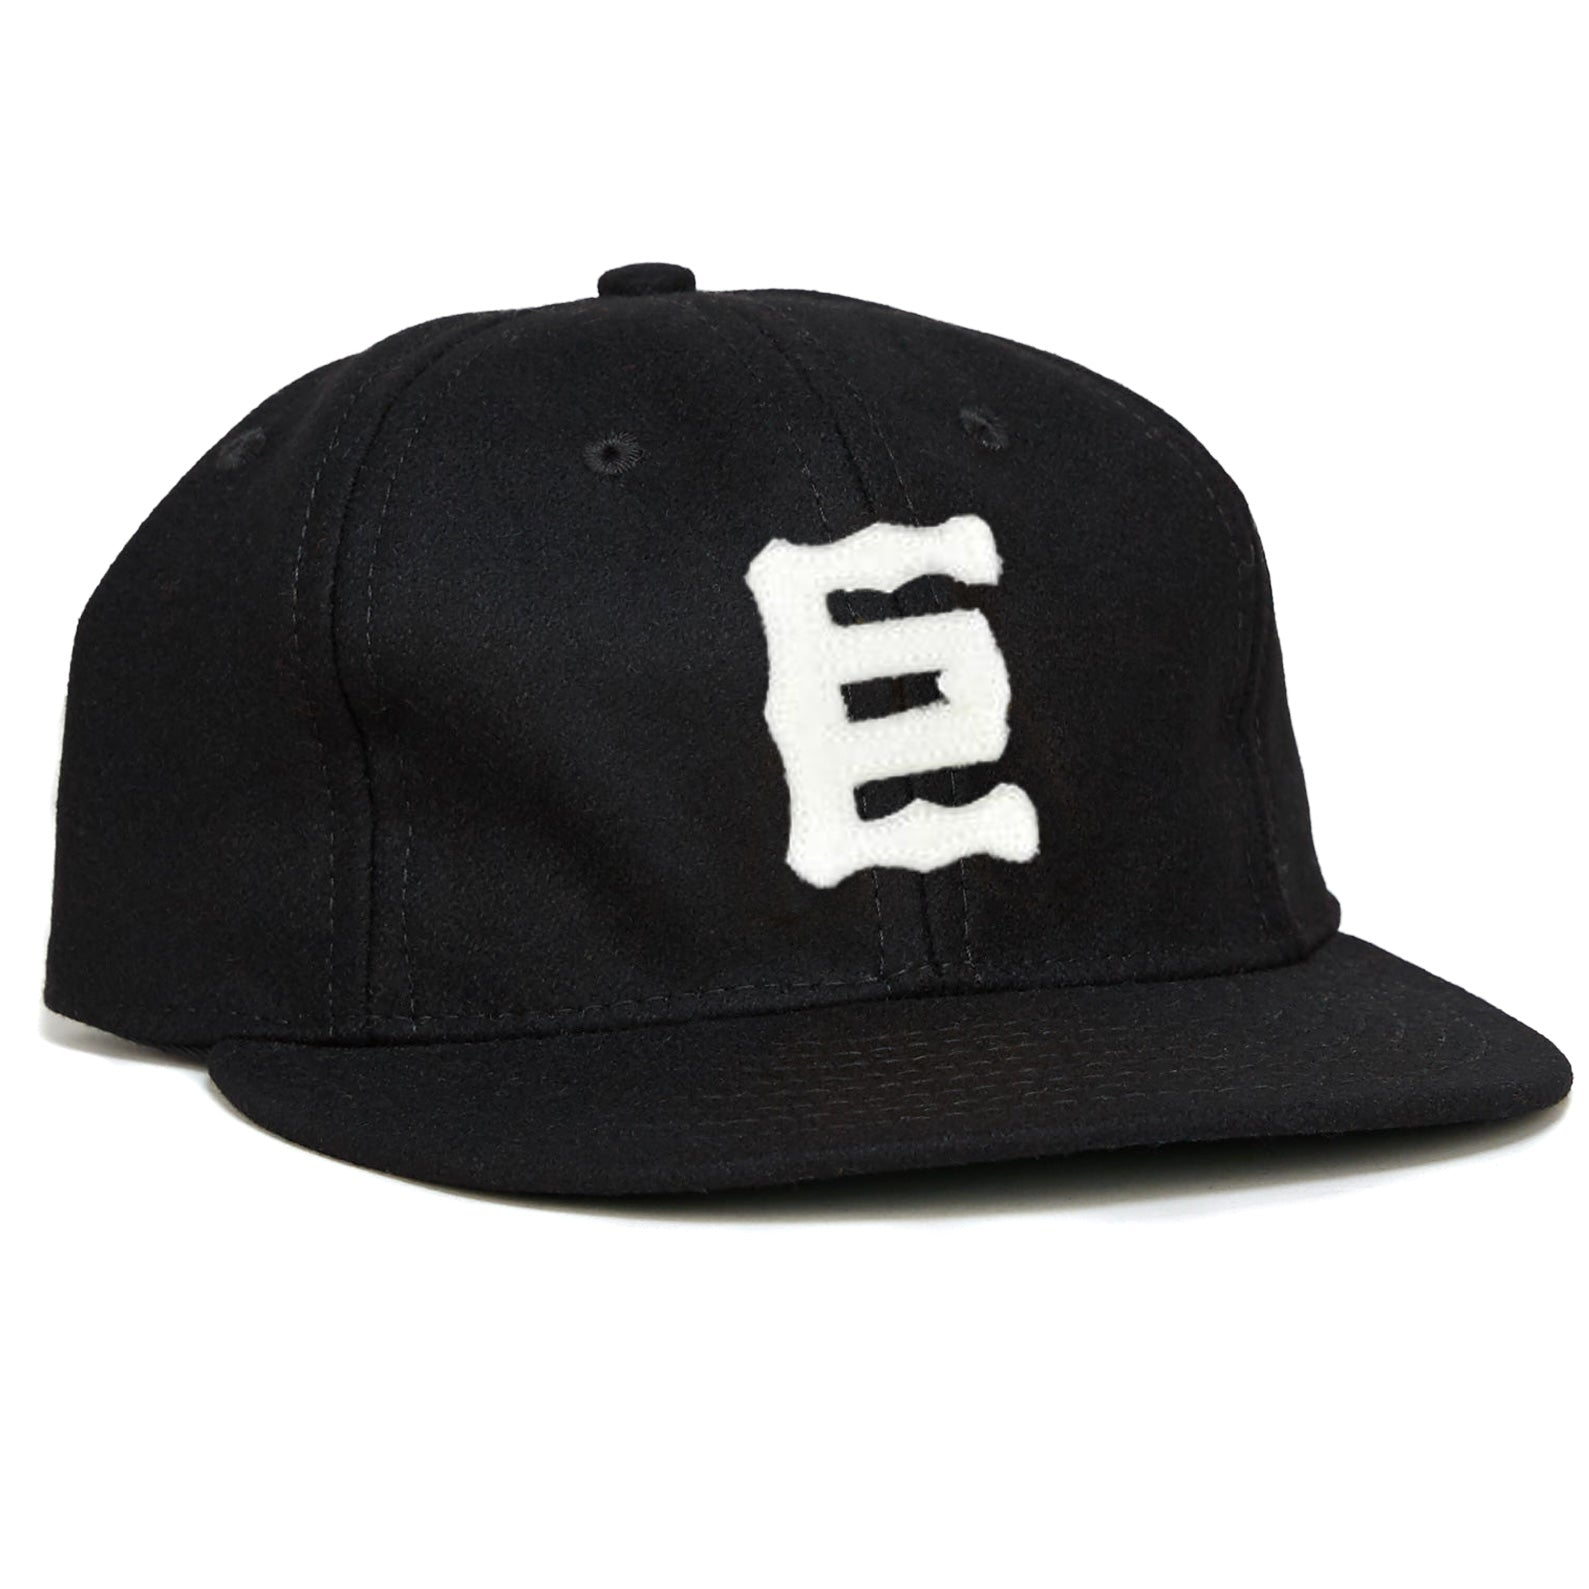 12e3f54b5 Ebbets Field Flannels, Vintage Throwback Jerseys, Baseball Caps, Tees